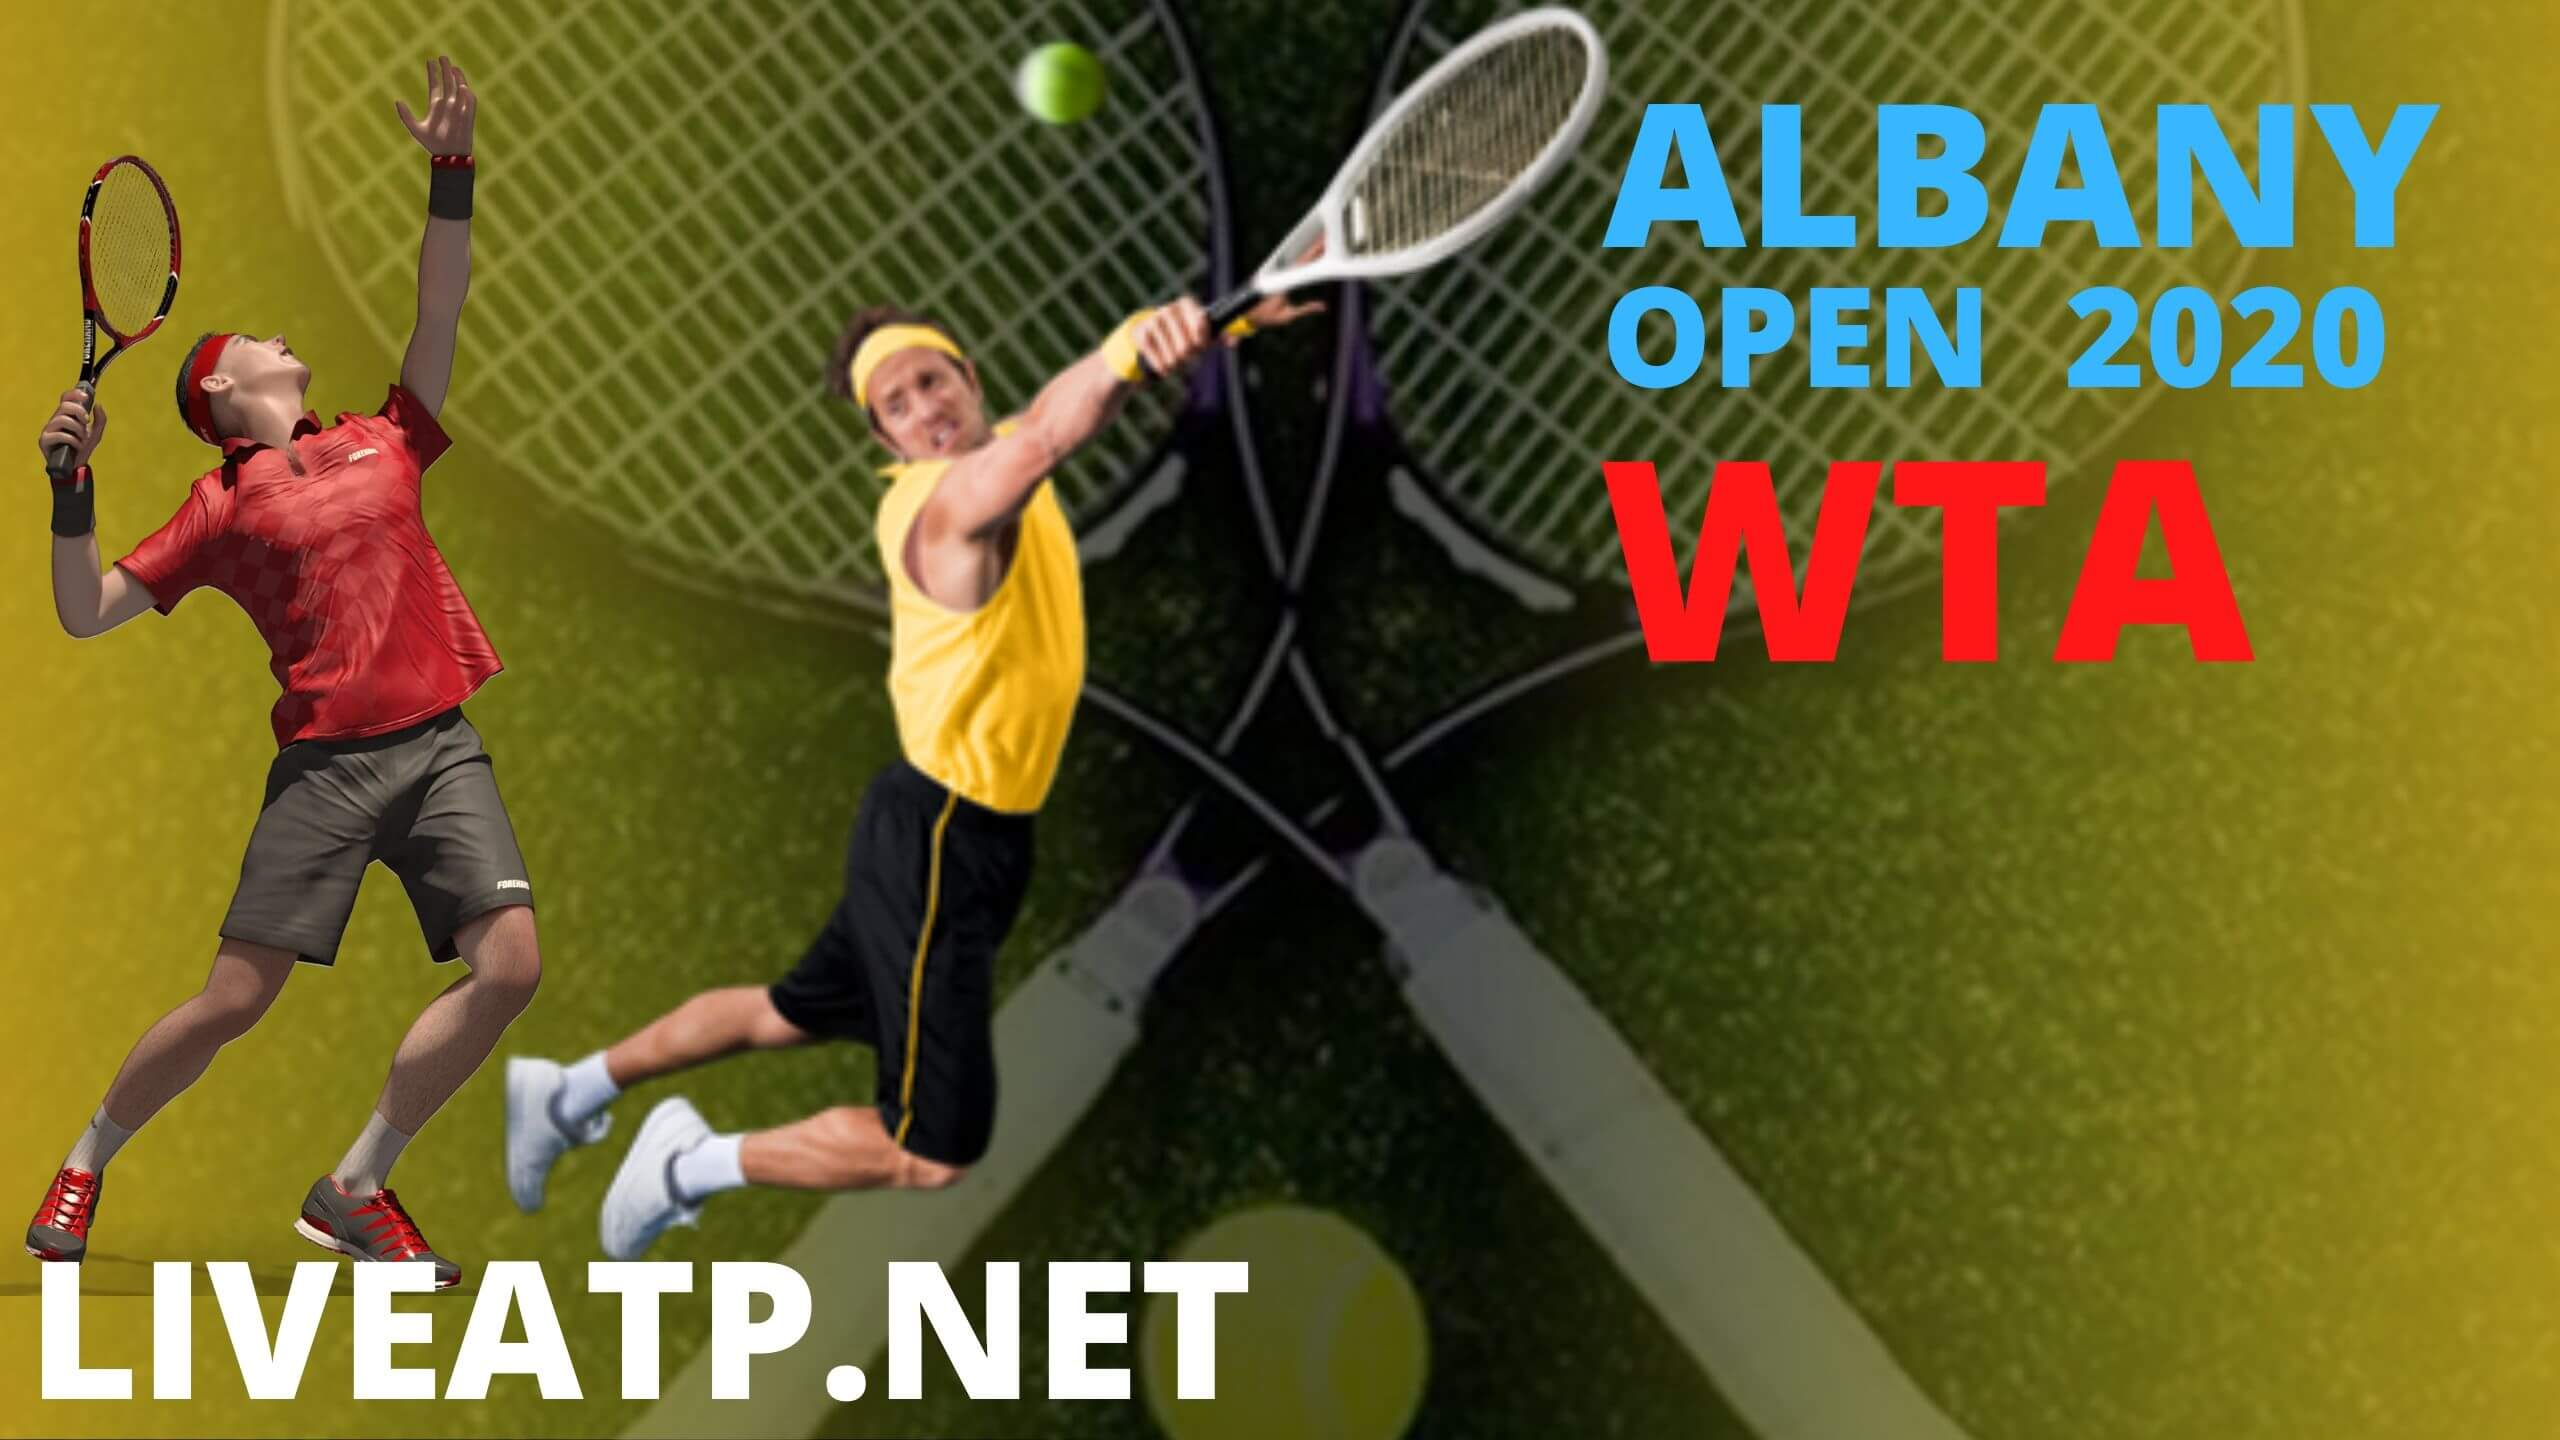 Albany Open Live Stream 2020 | Day 4